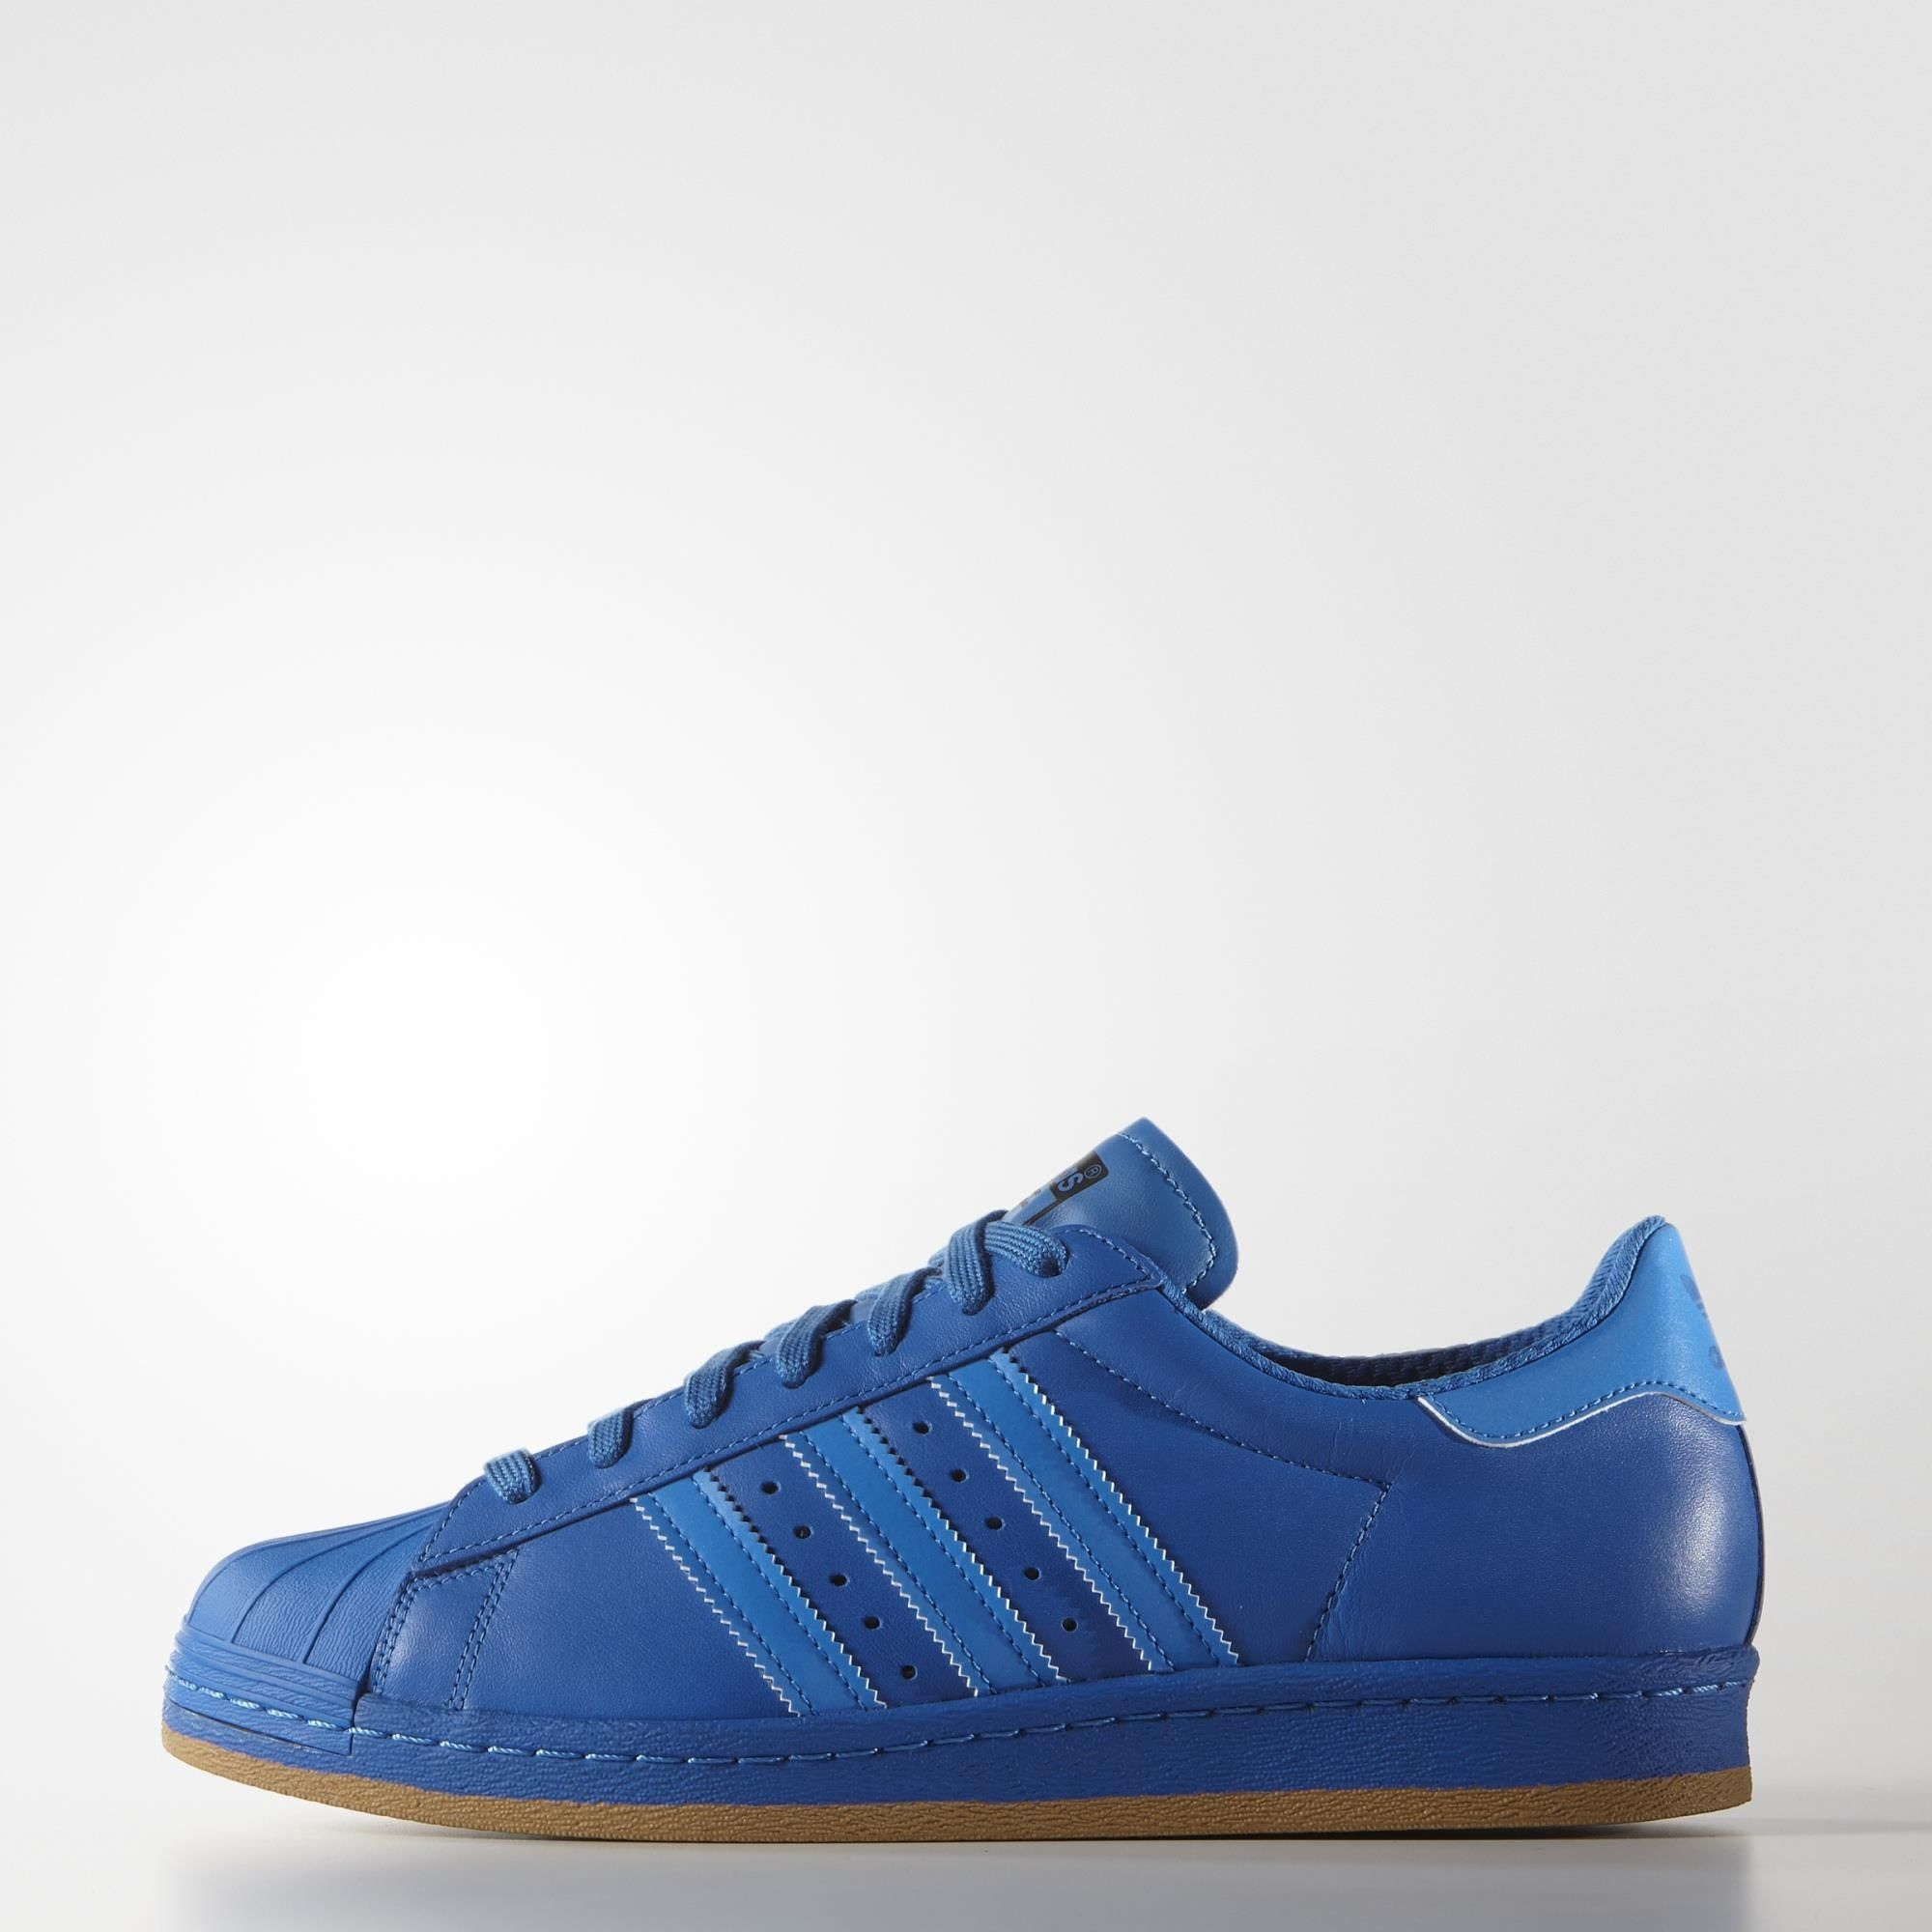 adidas Superstar 80s Nite Jogger Shoes Blue | adidas UK